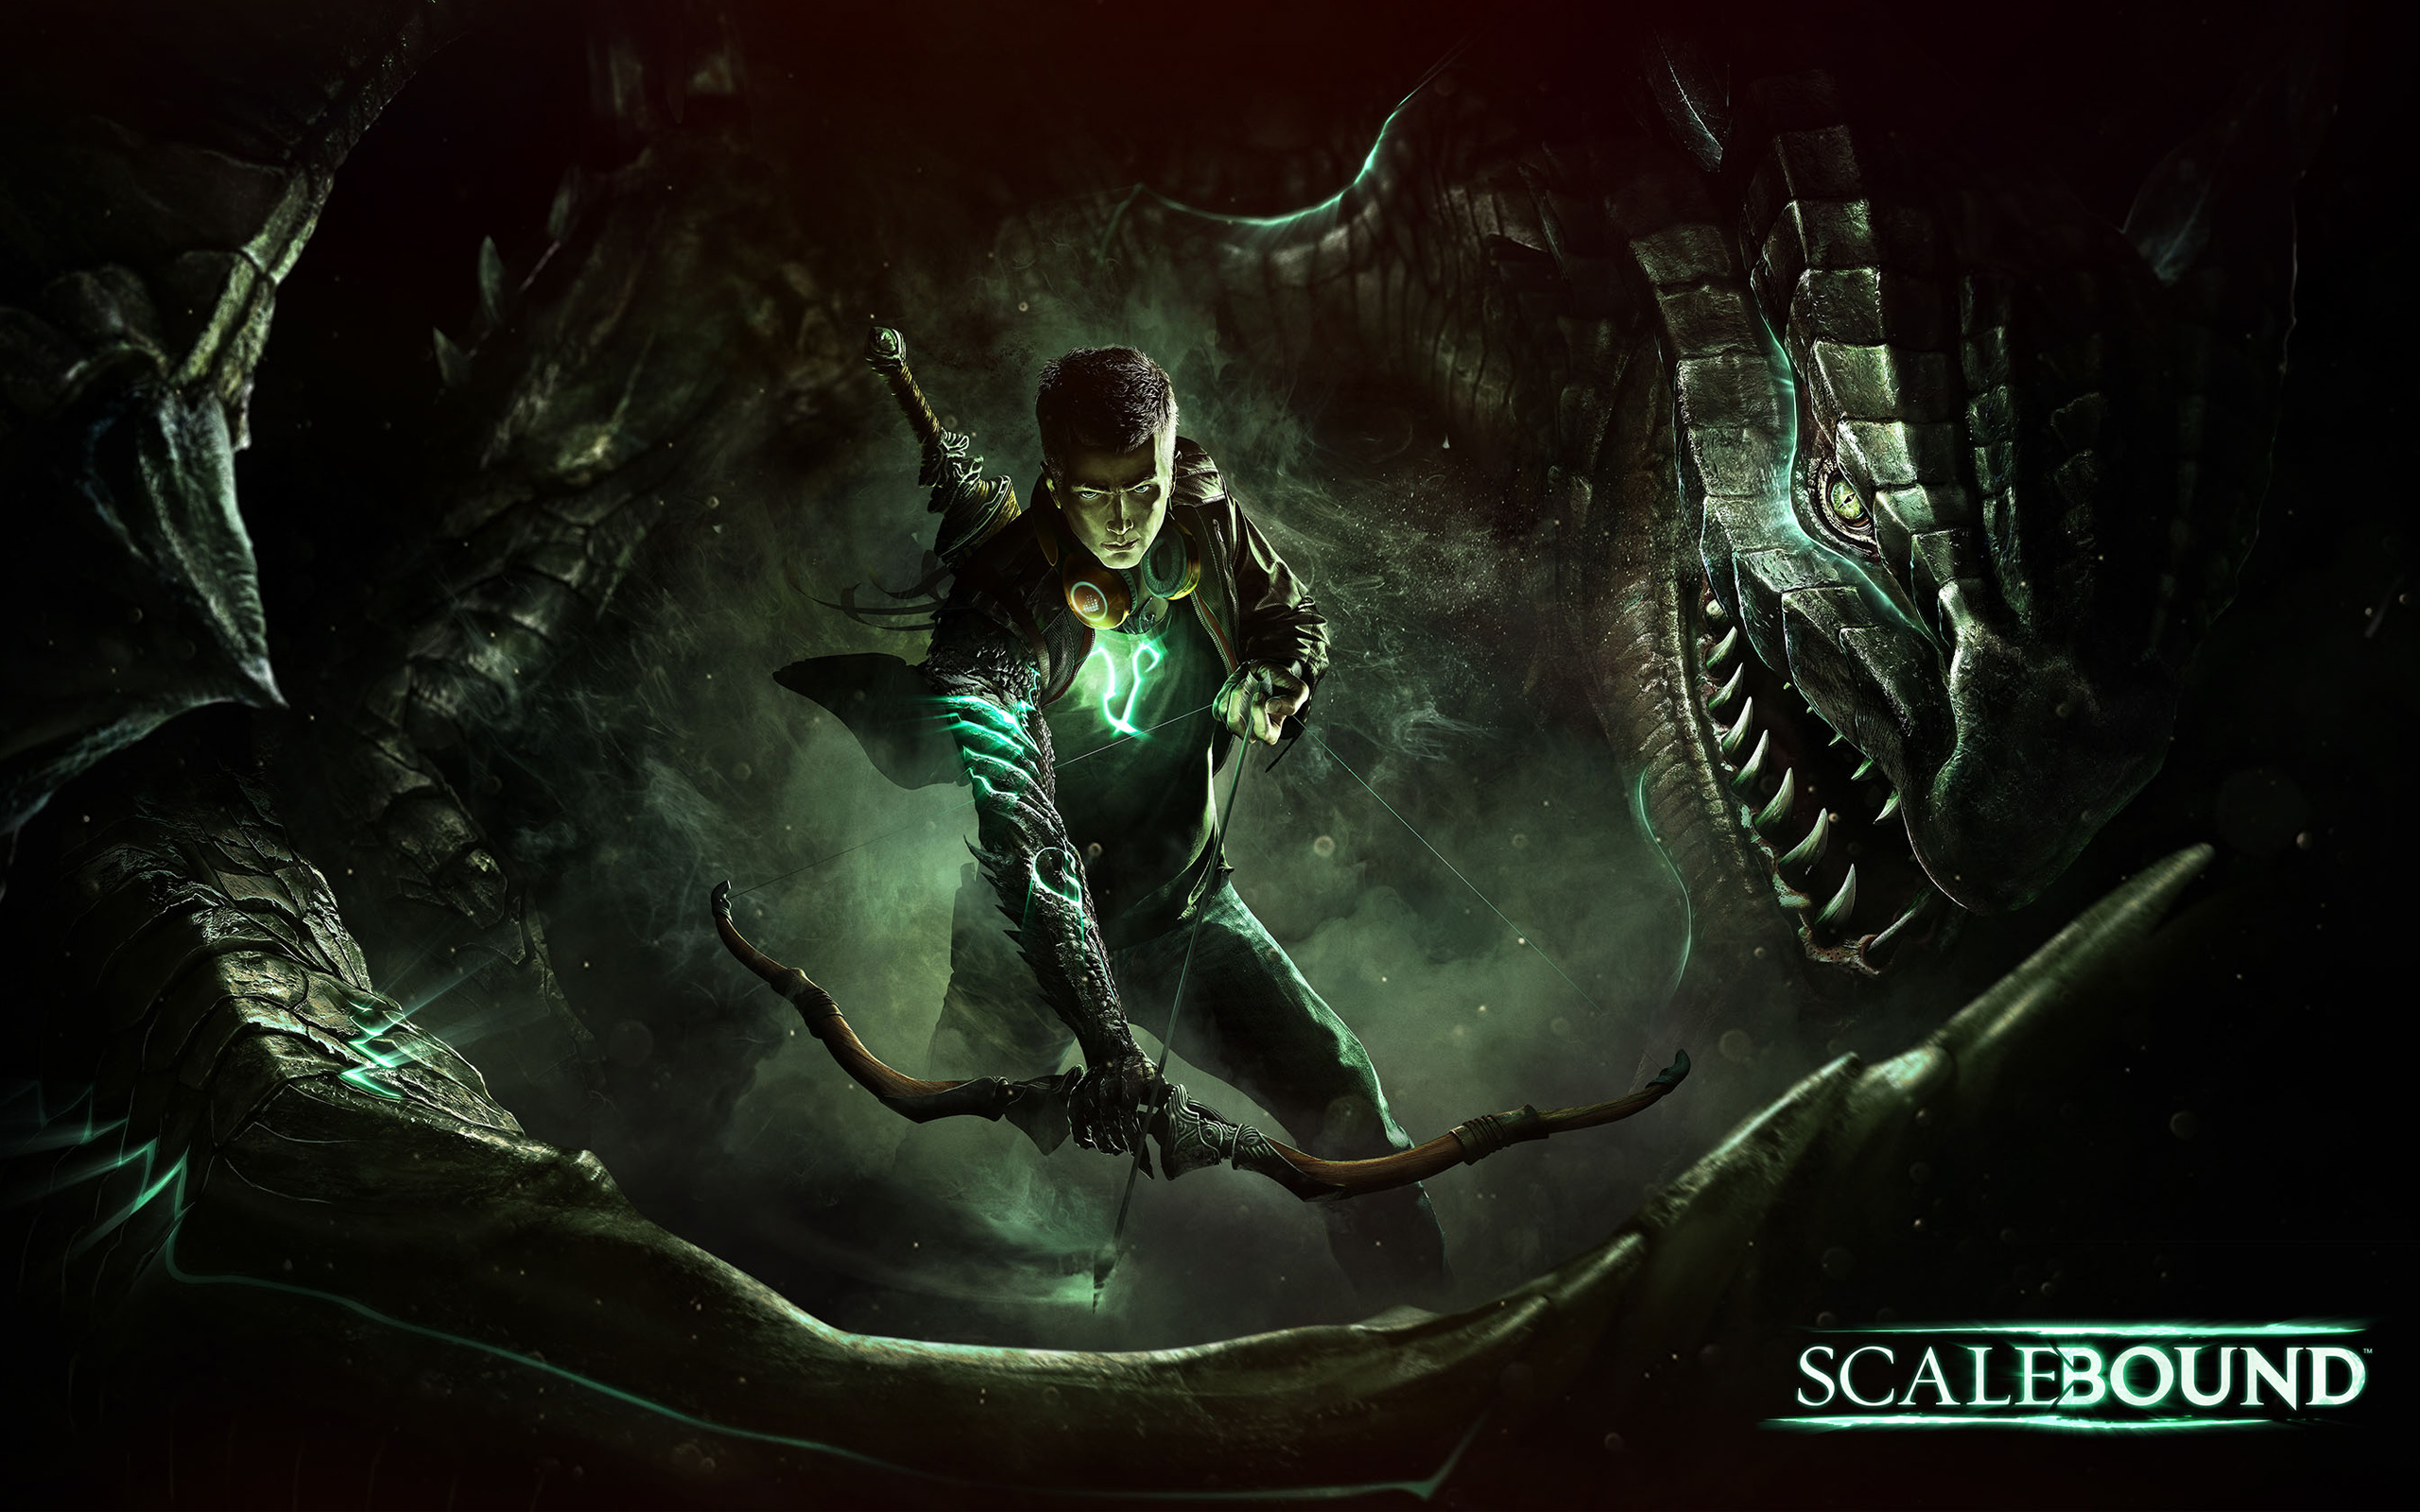 HD Wallpapers Scalebound Game